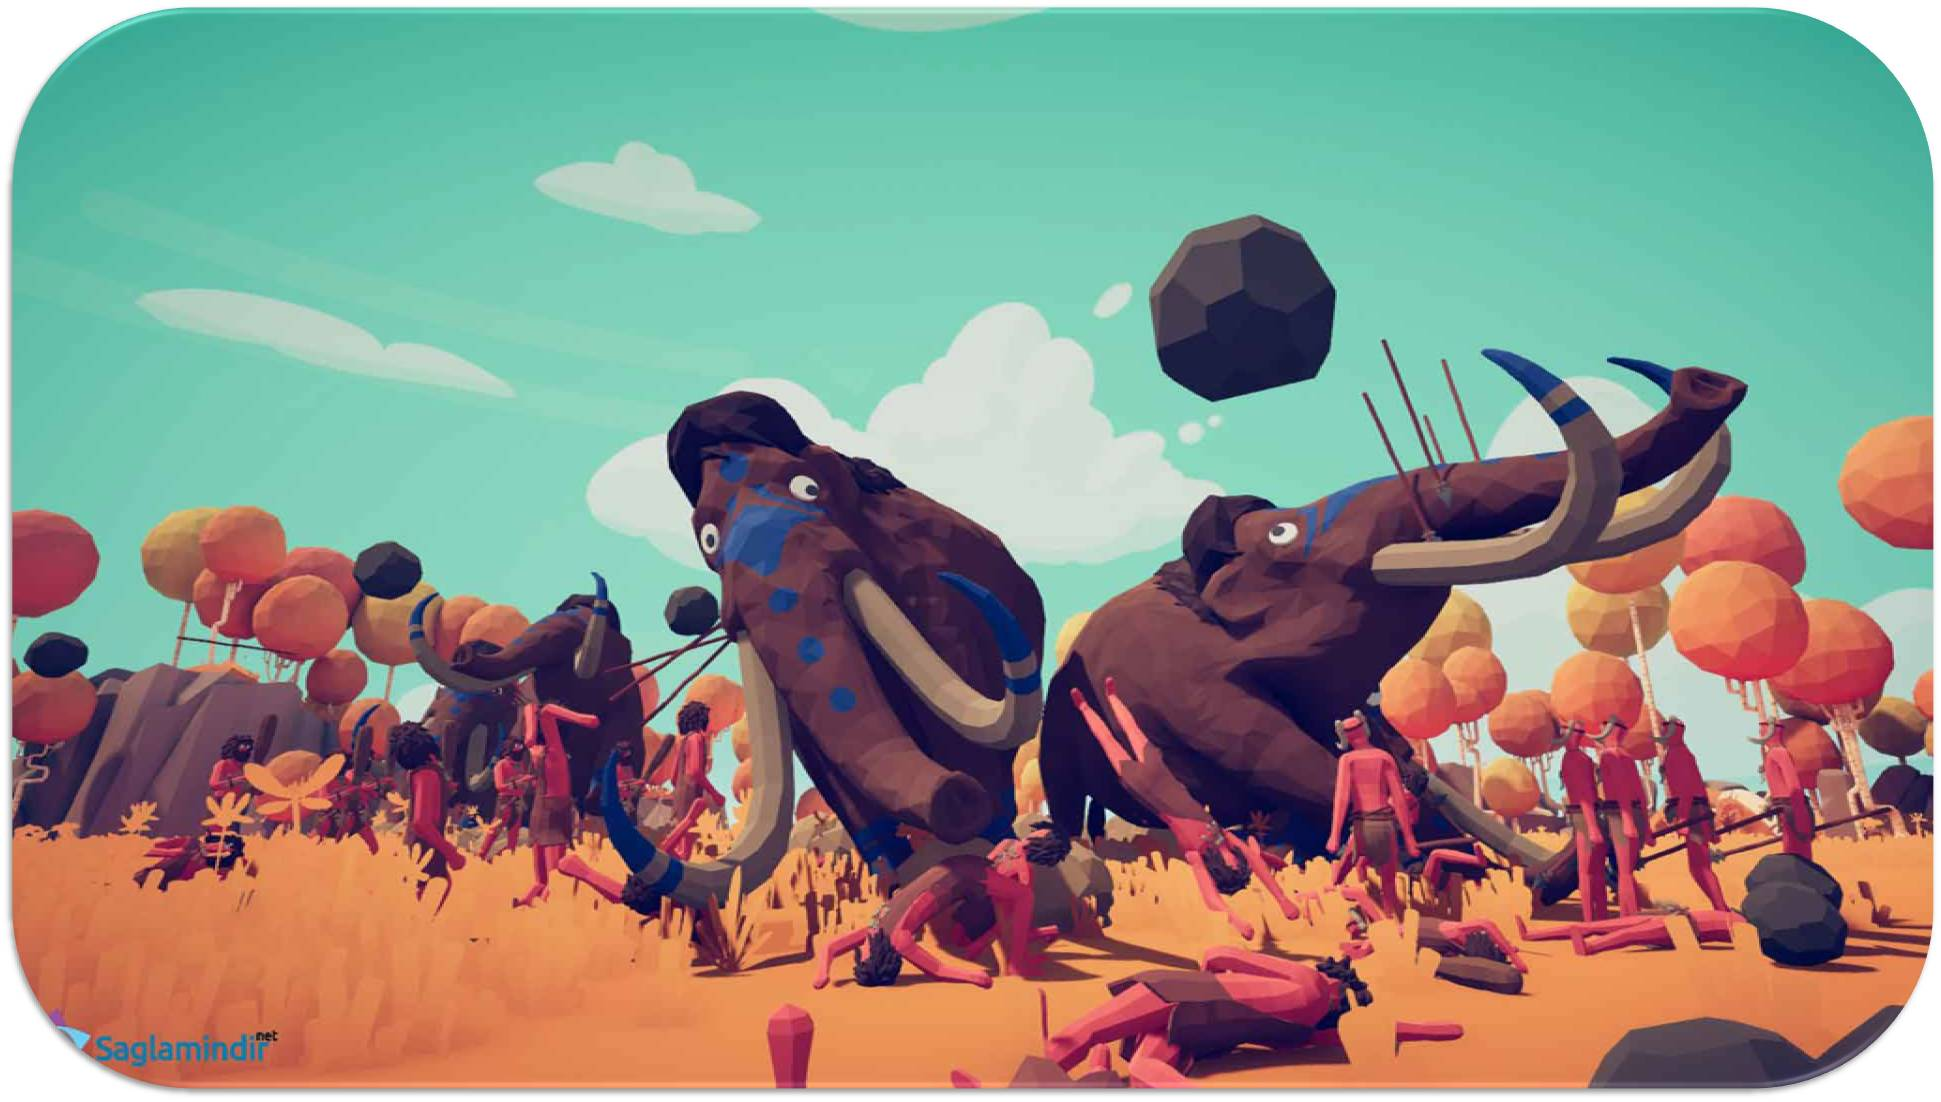 Totally Accurate Battle Simulator saglamindir